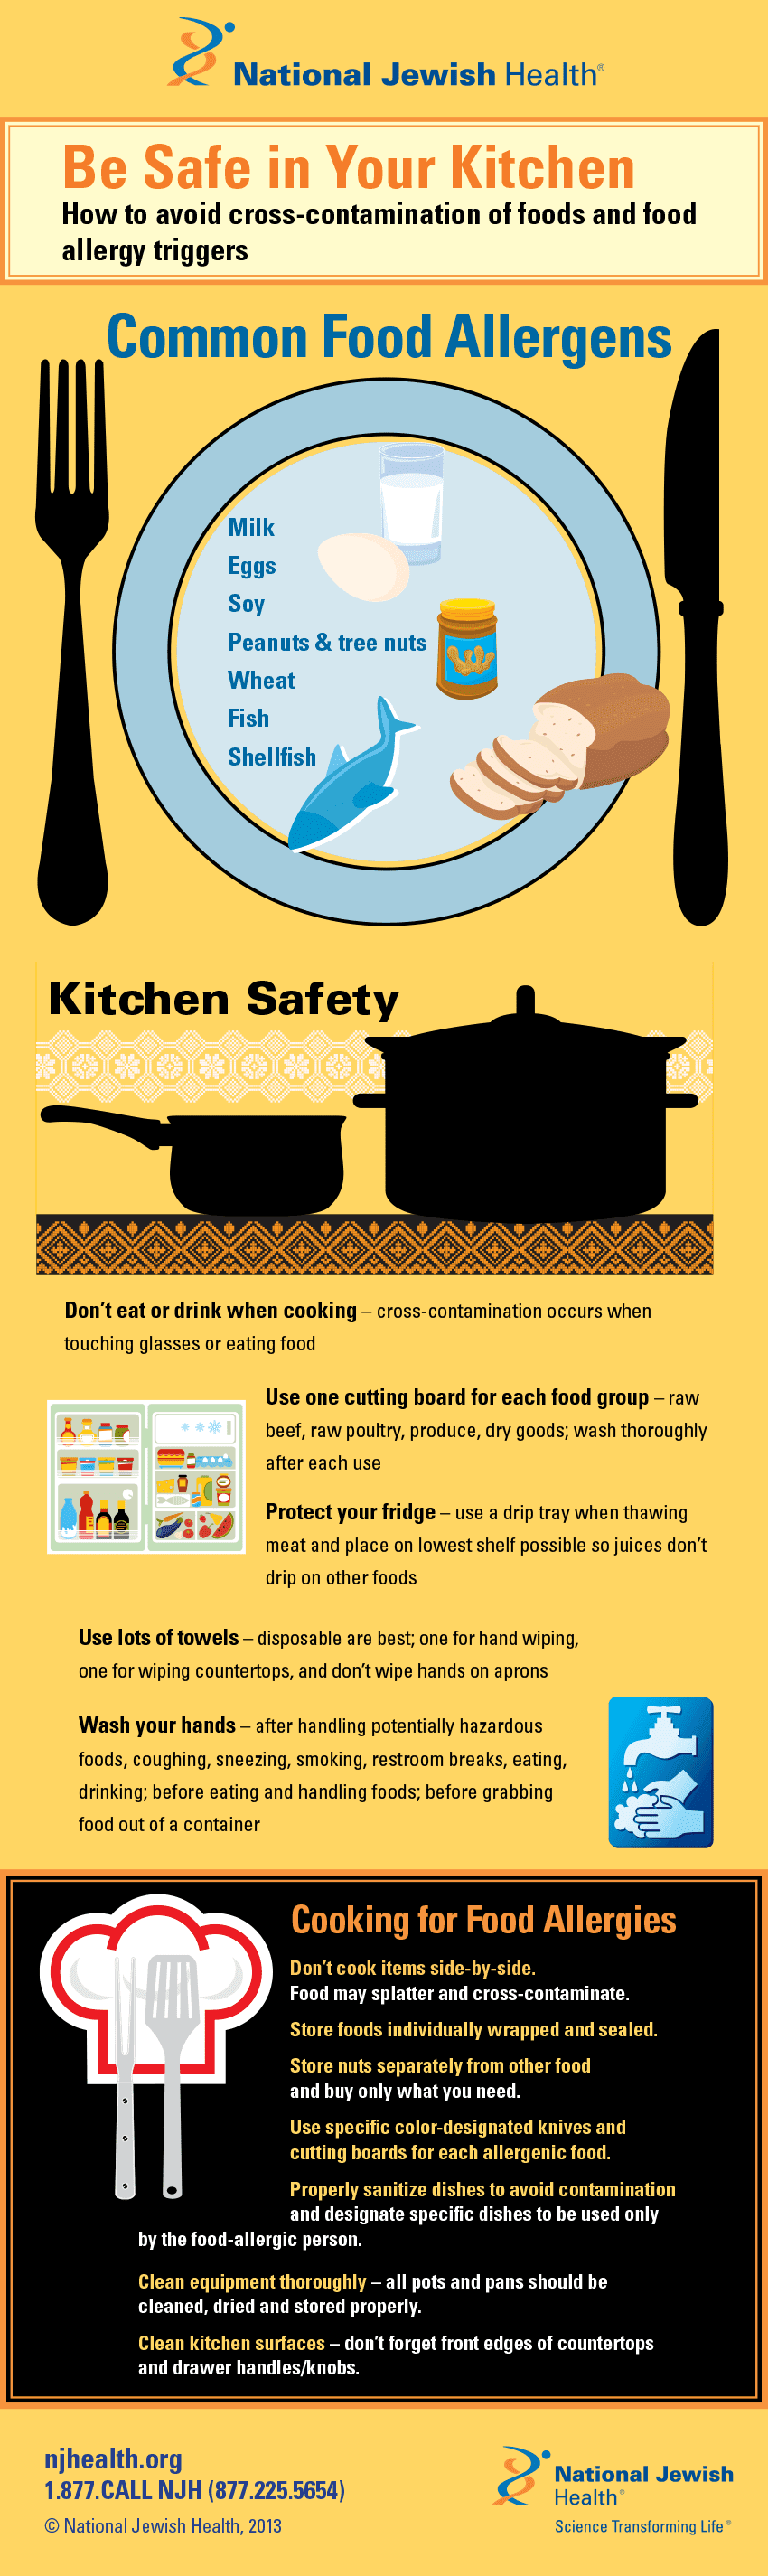 Be Safe in Your Kitchen: How to Avoid Cross-Contamination of Food and Food Allergy Triggers #infographic